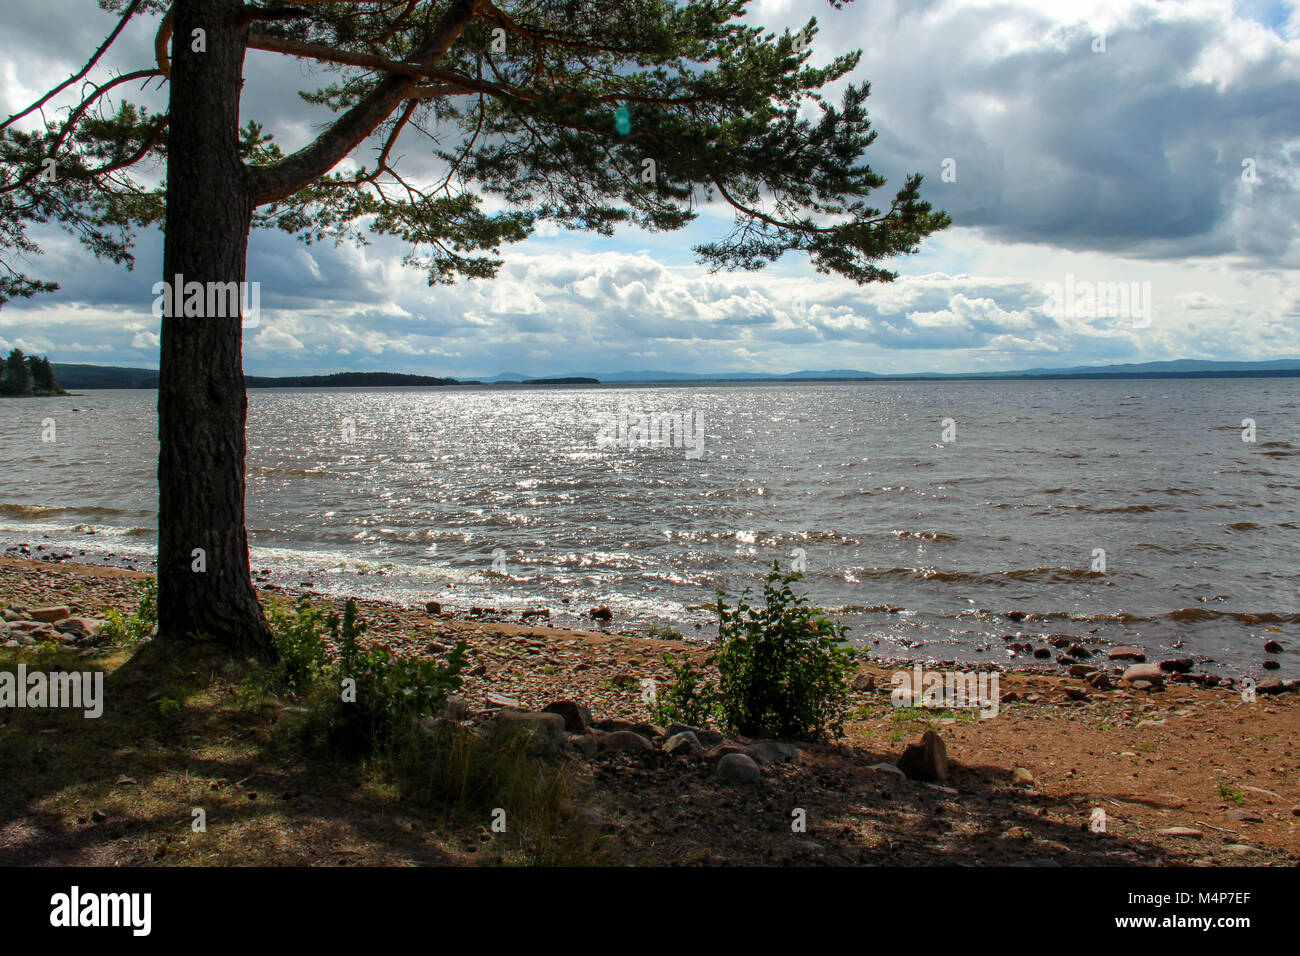 Pine tree at sunny beach by Orsa lake in Sweden in summer. - Stock Image